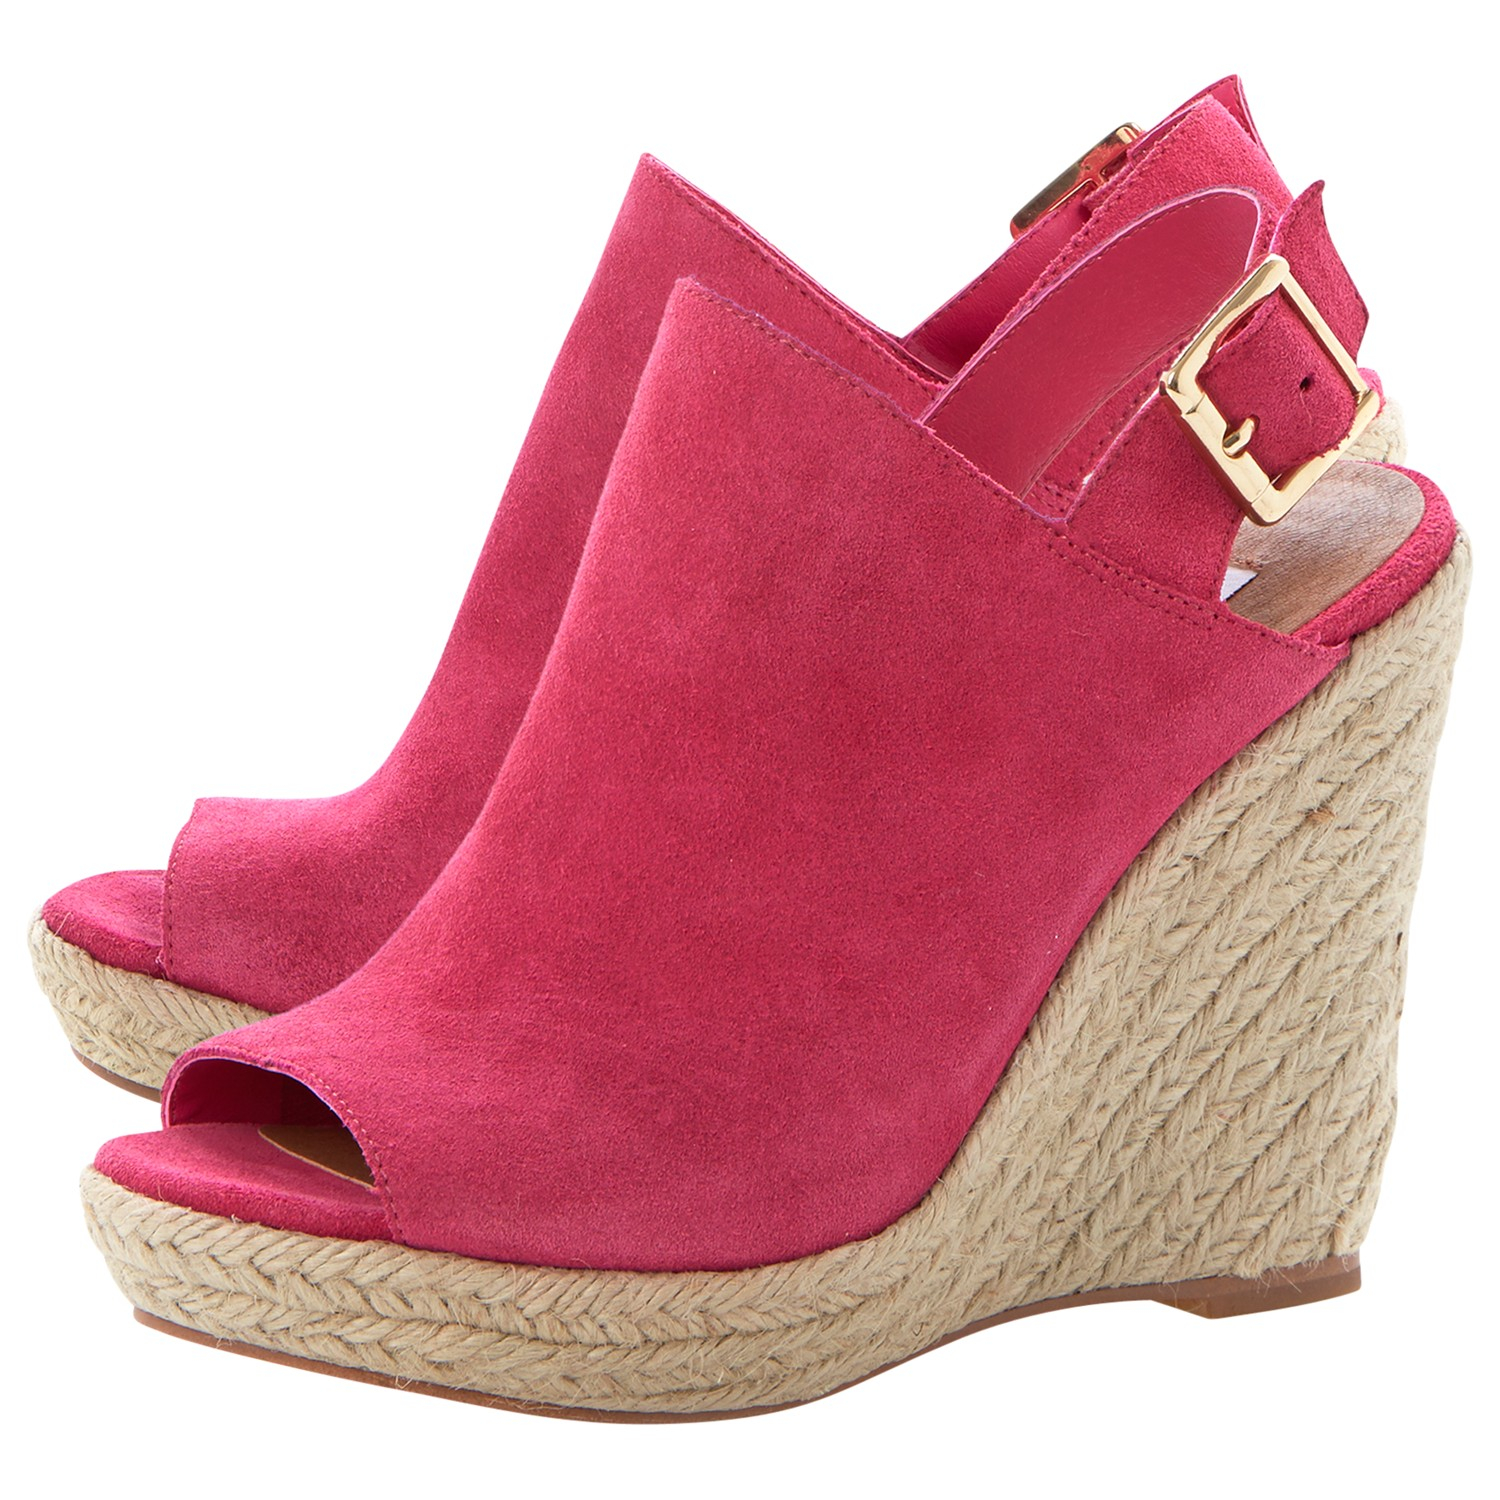 c15b9efdfa84 Steve Madden Corizon Suede High Wedged Sandals in Pink - Lyst